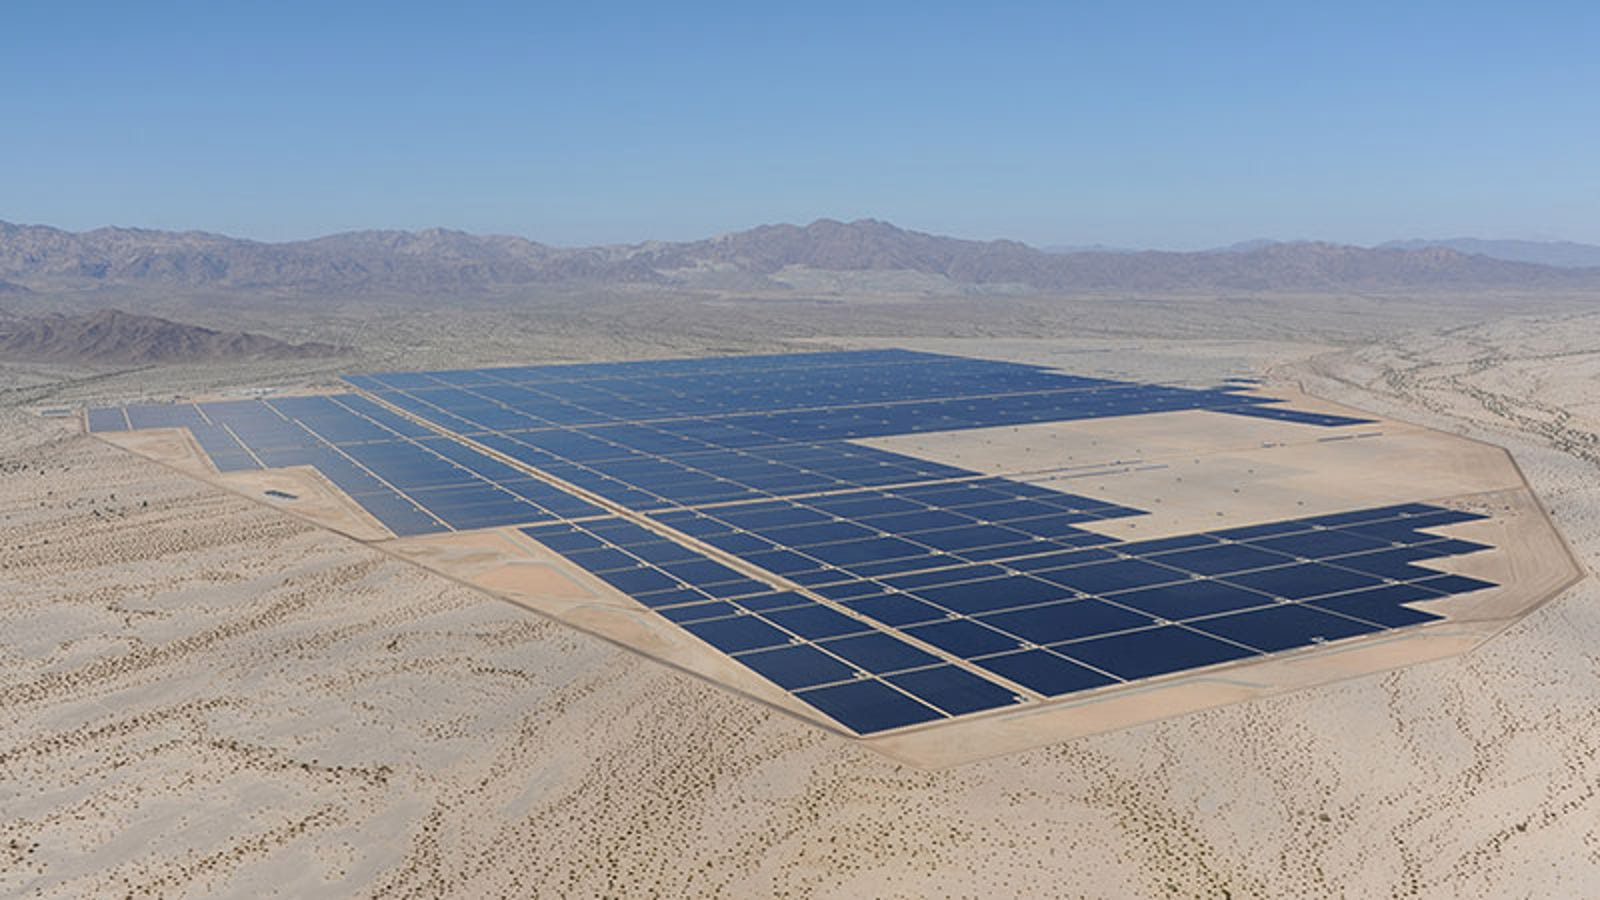 The Largest Solar Plant In The World Is Now Operational